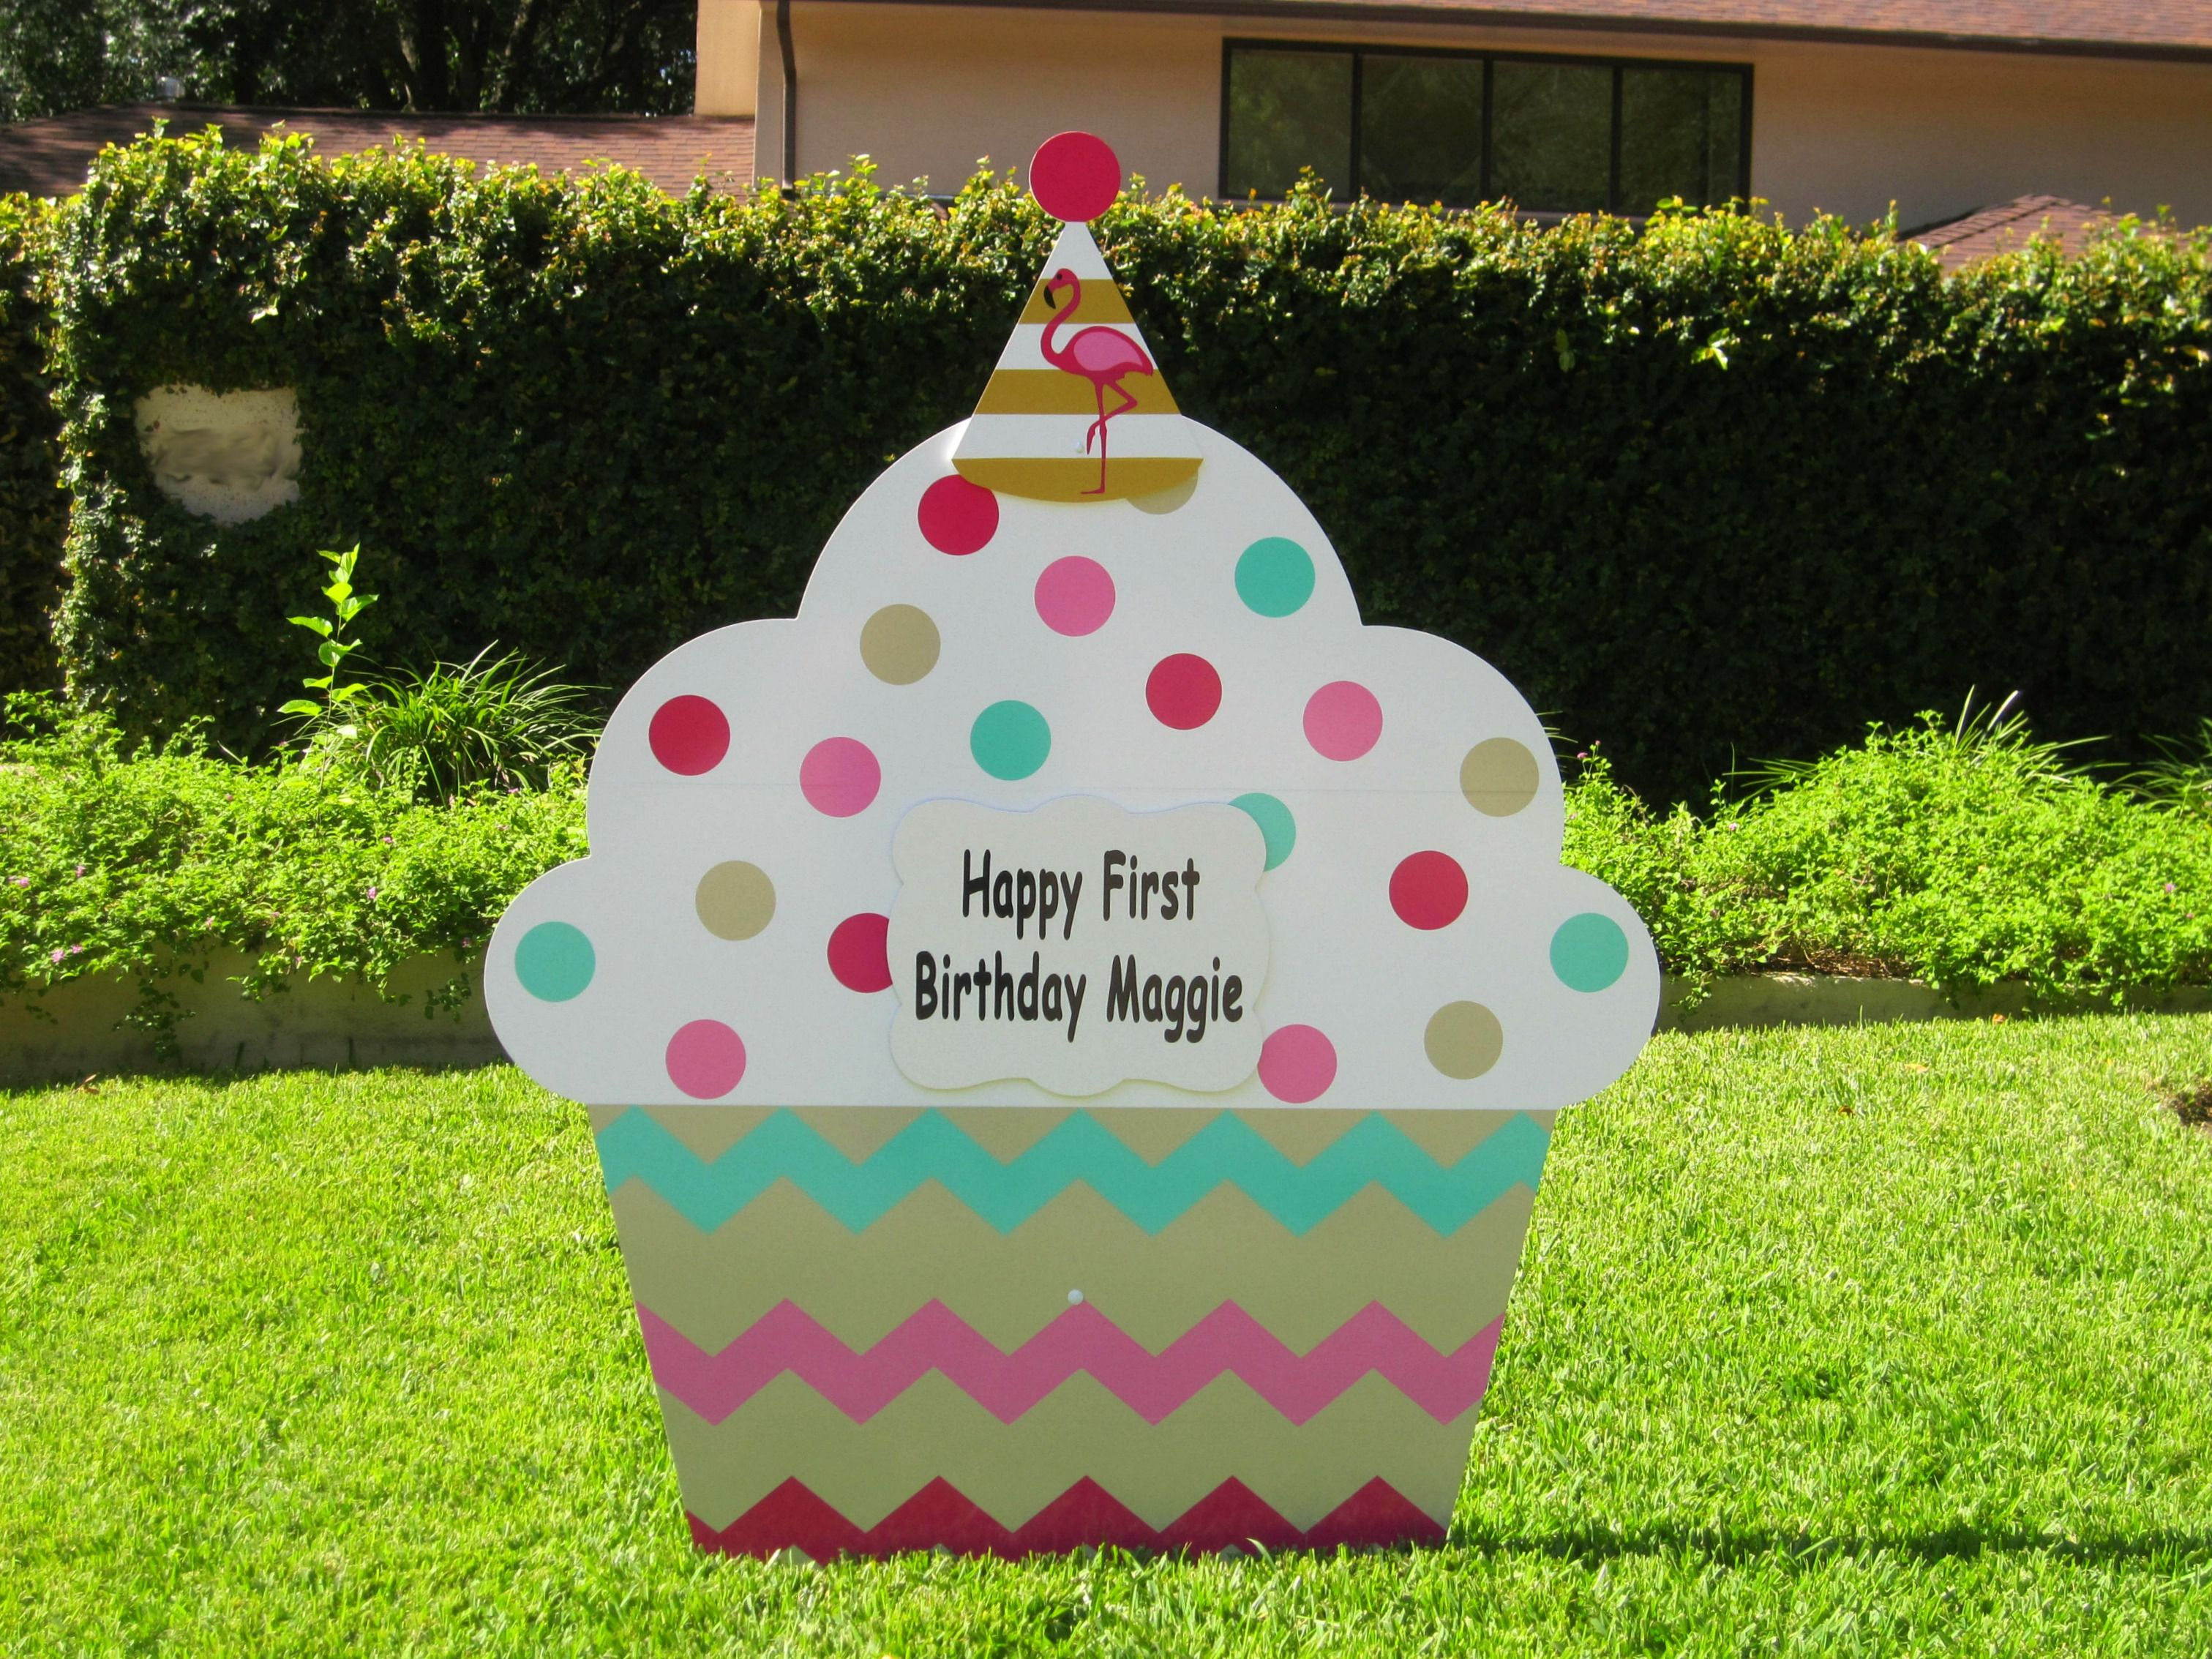 Birthday lawn sign rentals business opportunity lawn